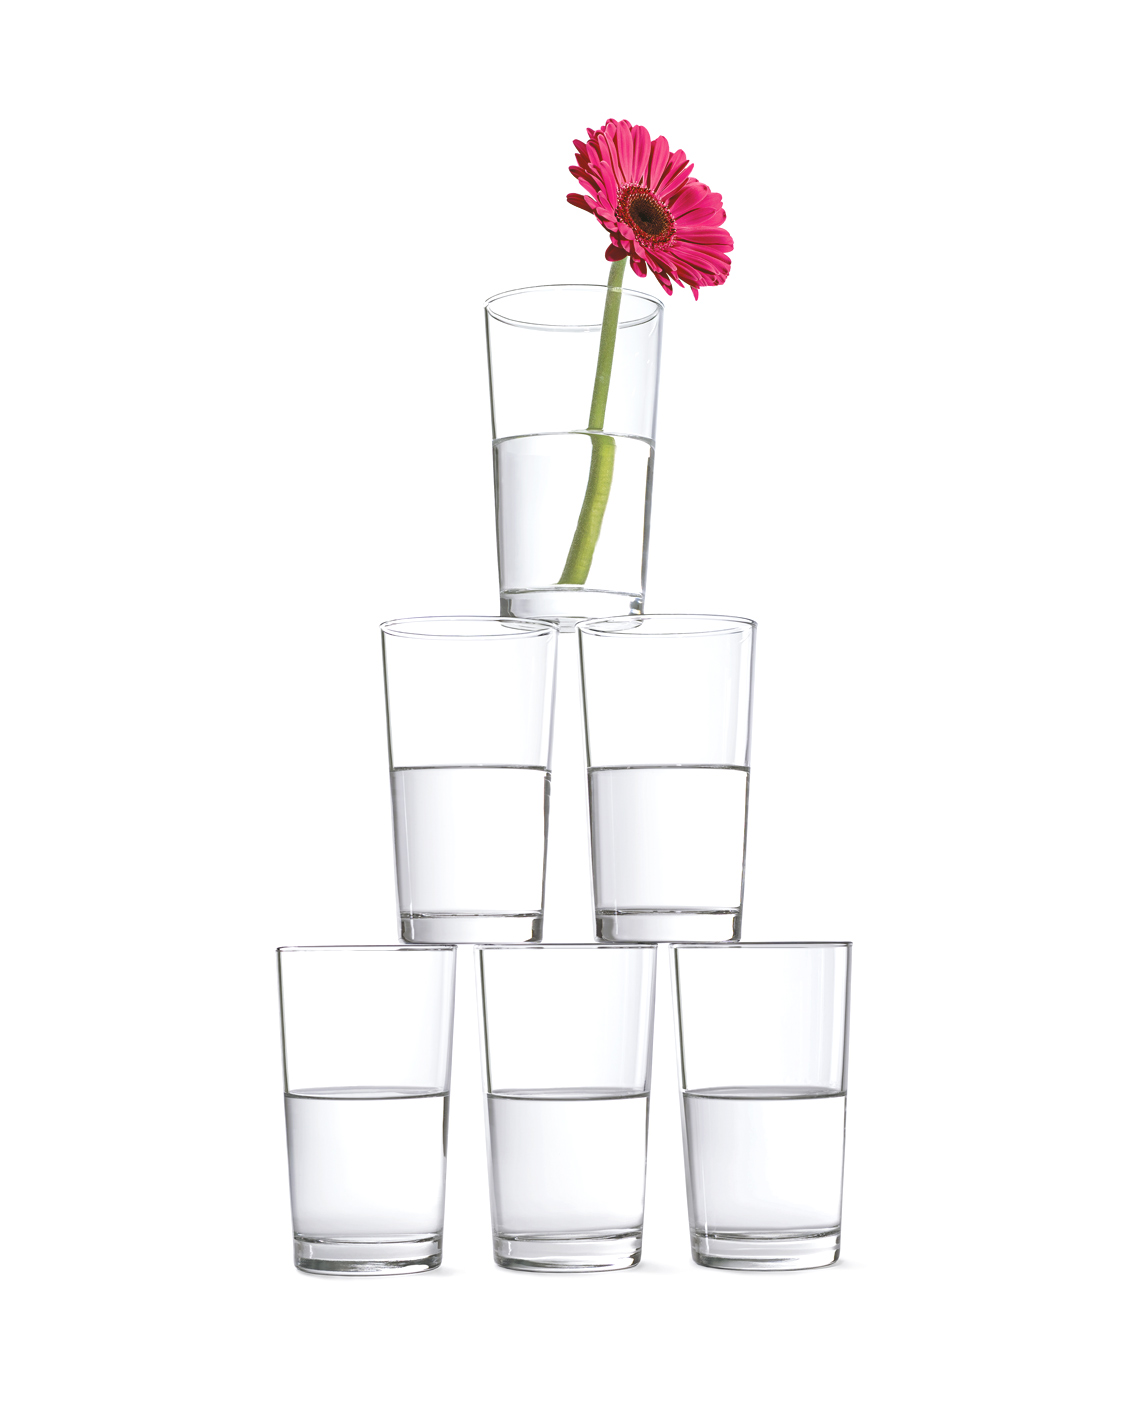 97-OptimisticWater_glasses_00006-GRACoL2Argyll_GSG